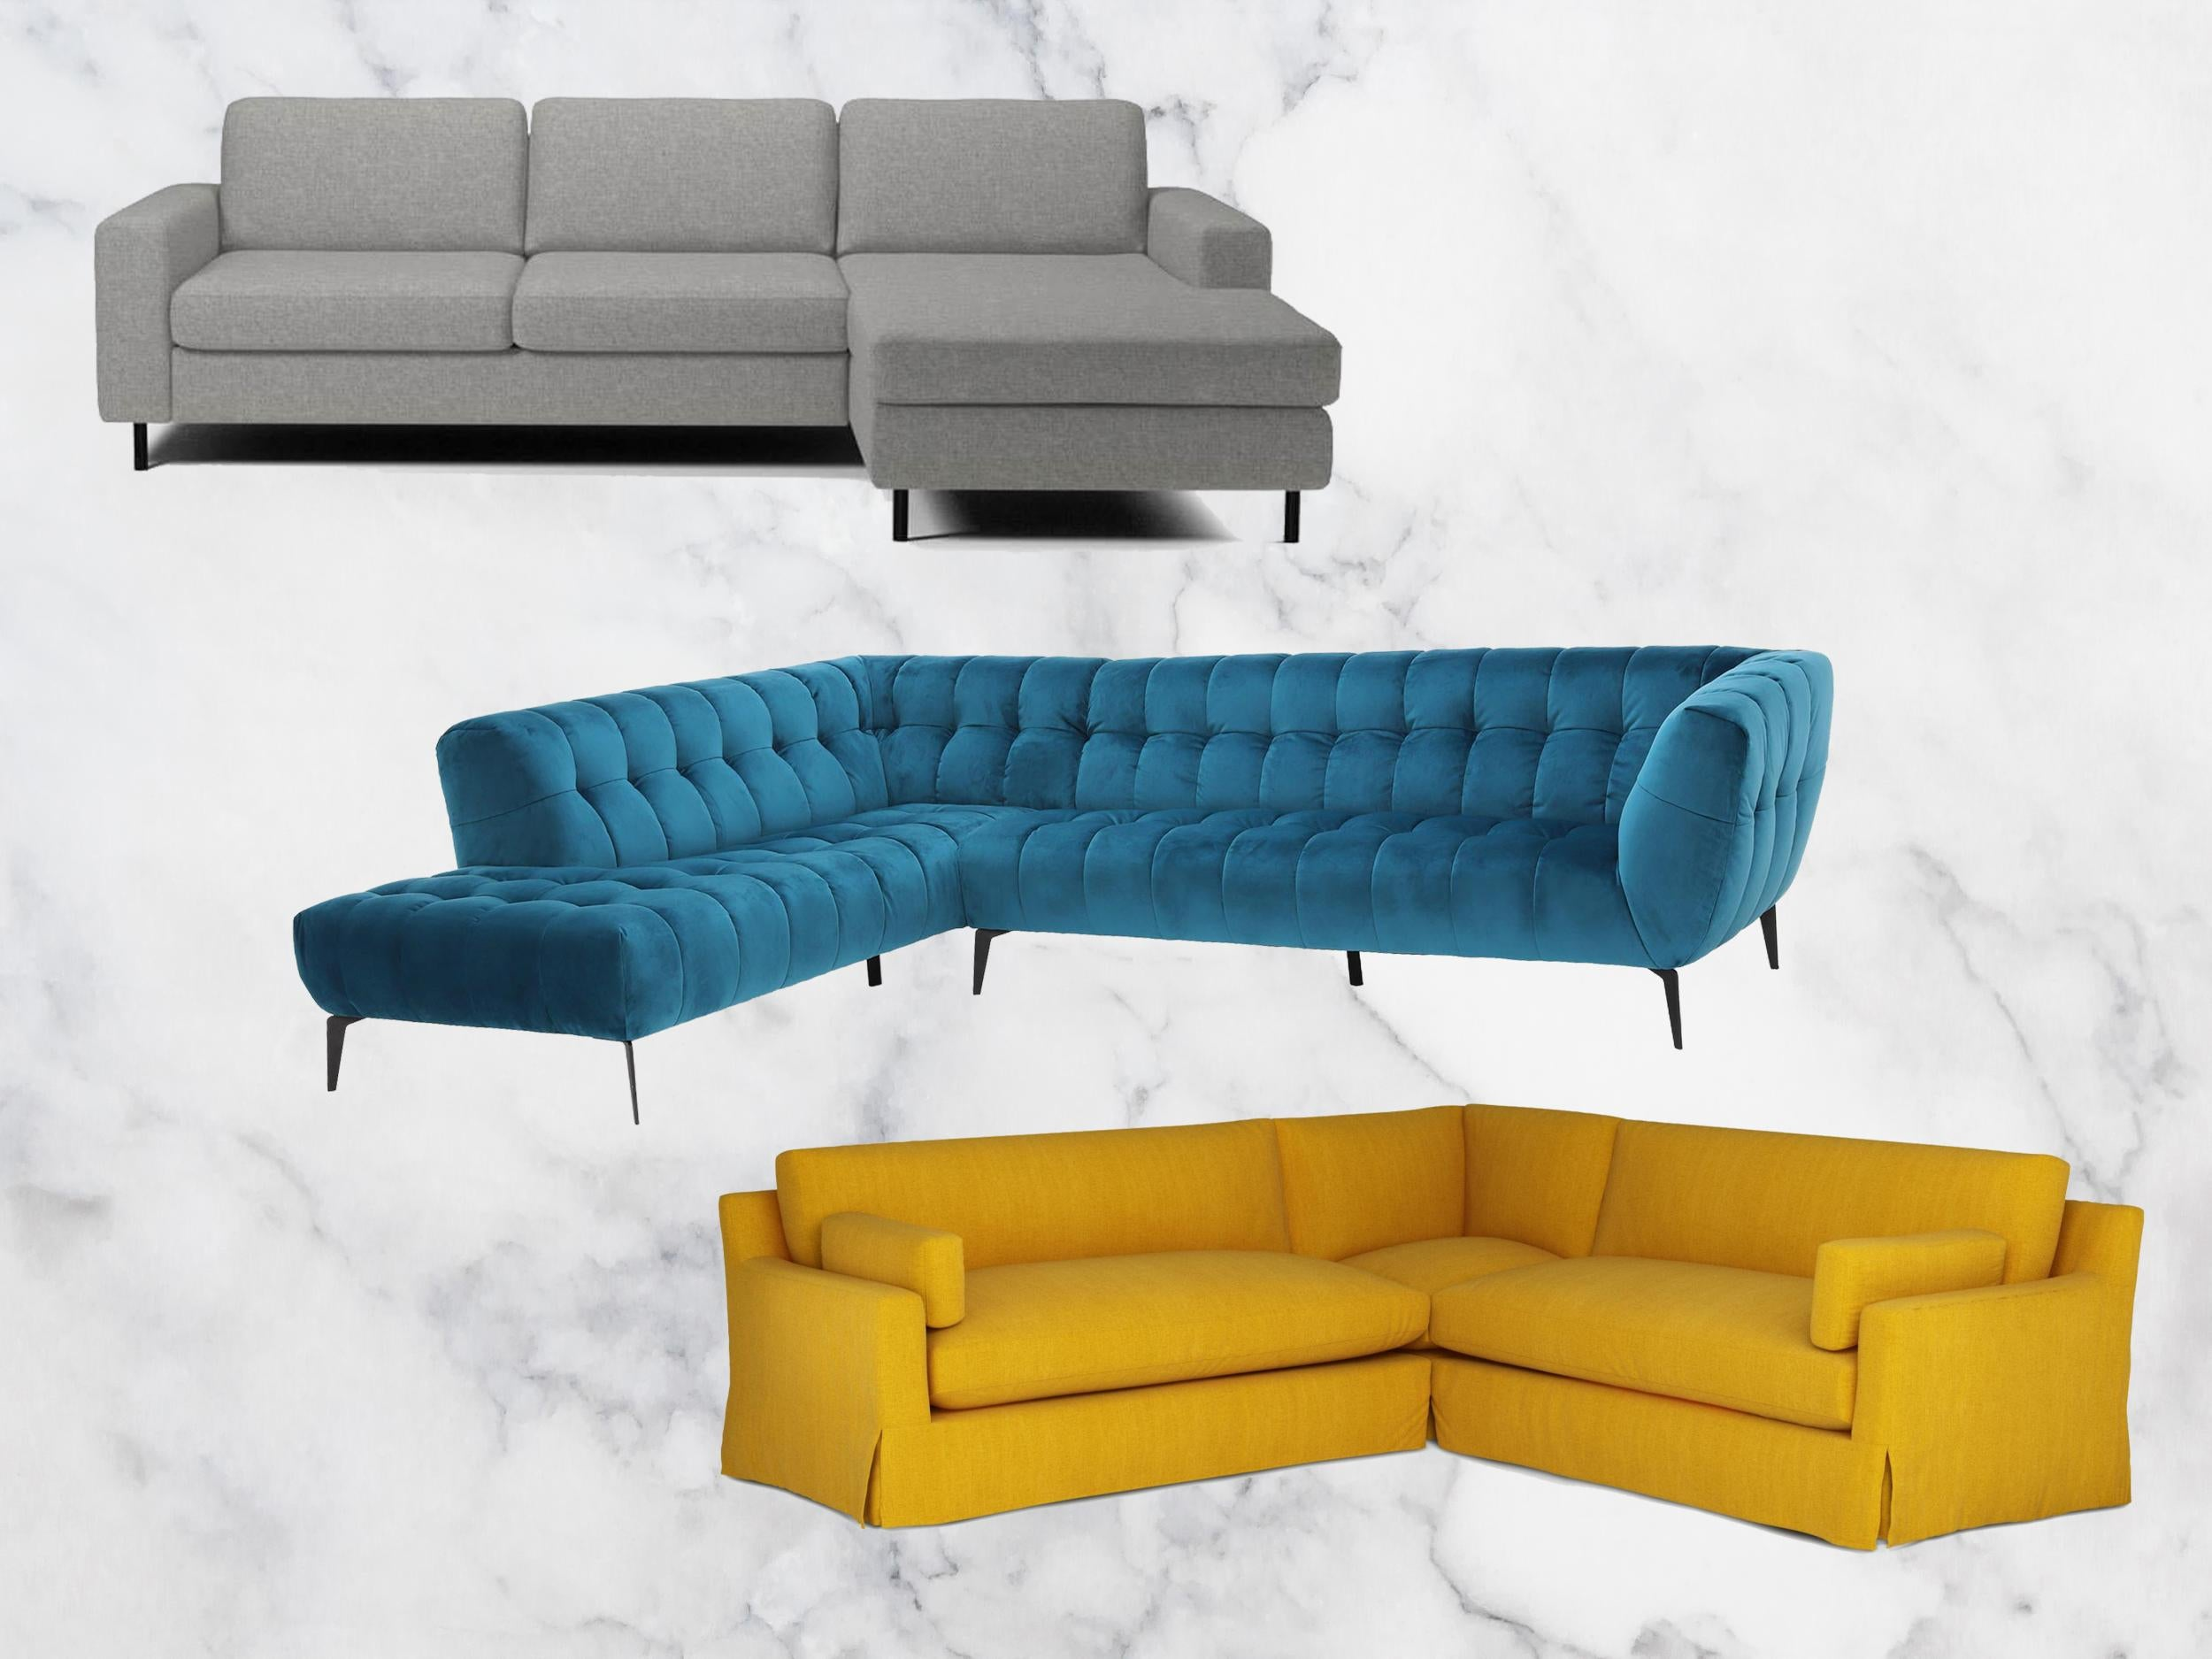 Swell 10 Best Corner Sofas The Independent Interior Design Ideas Ghosoteloinfo